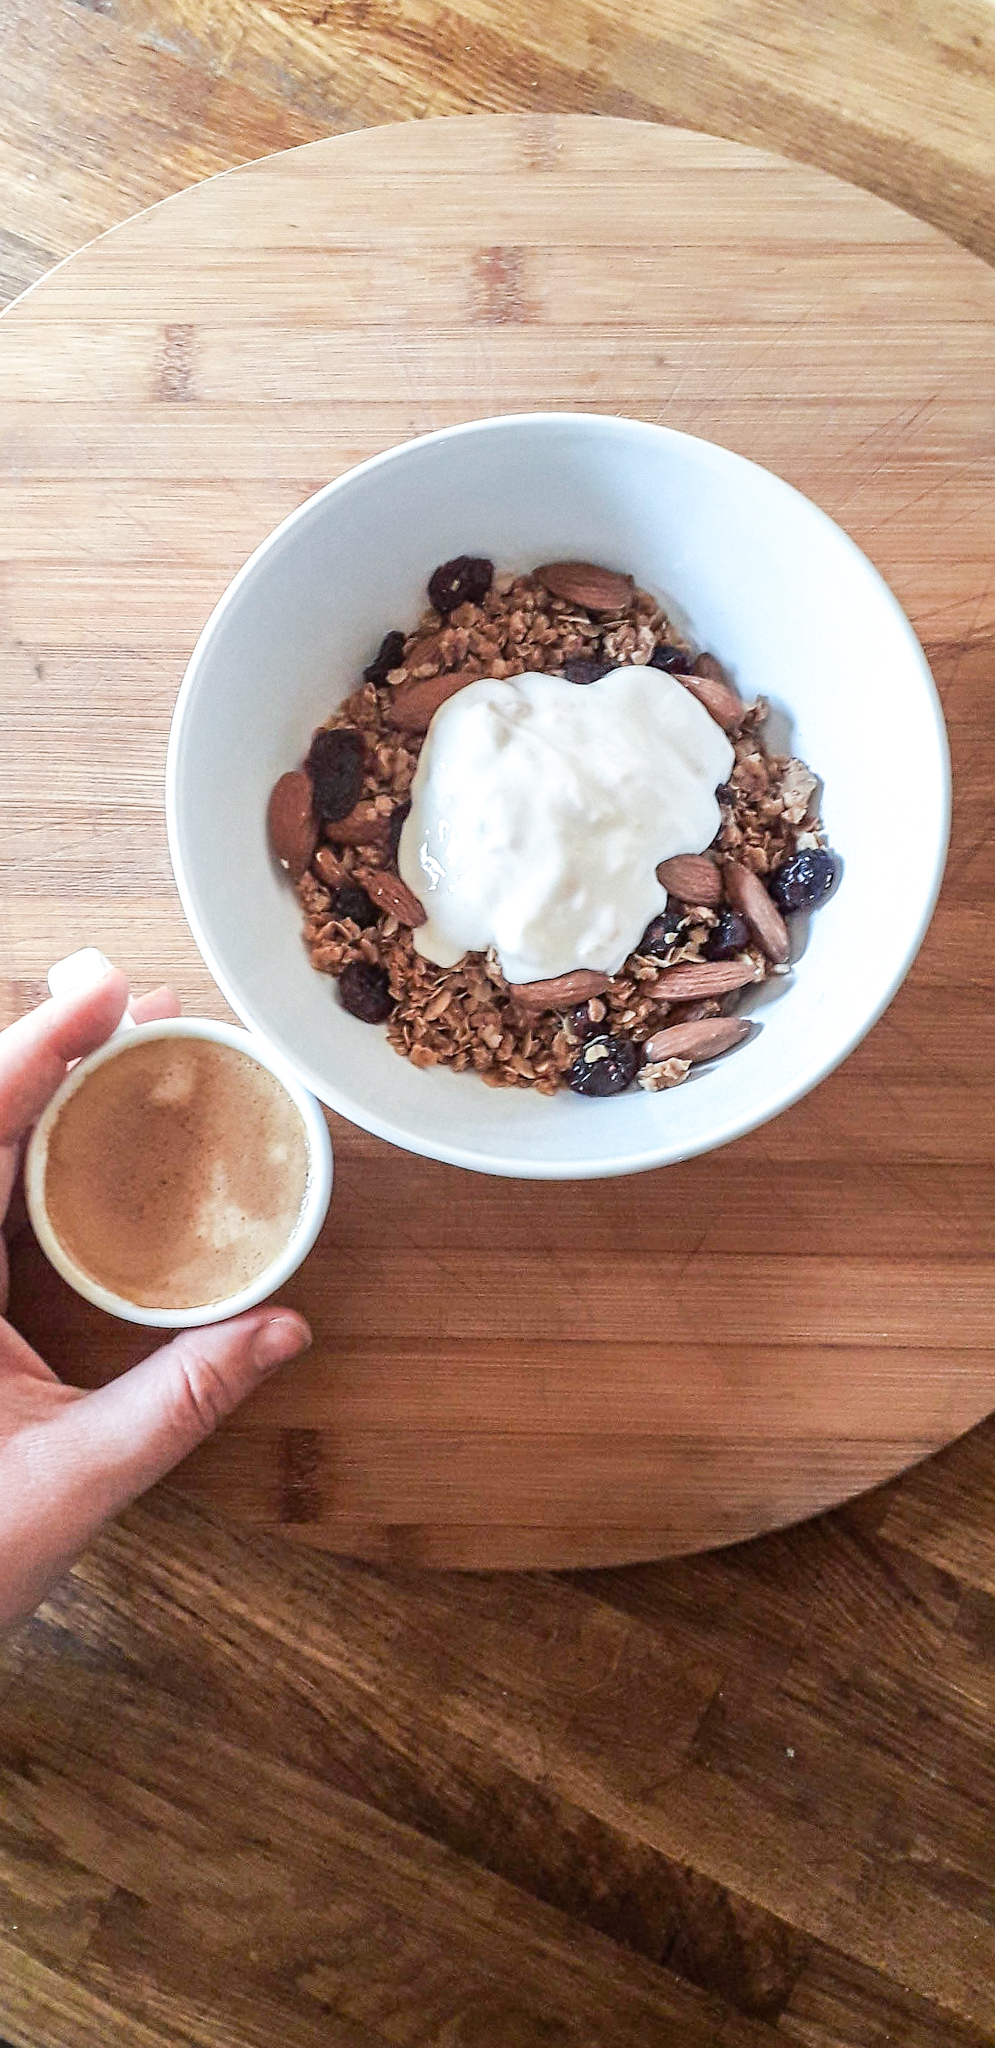 Delicious served with a dollop of your favourite dairy or plant-based yogurt